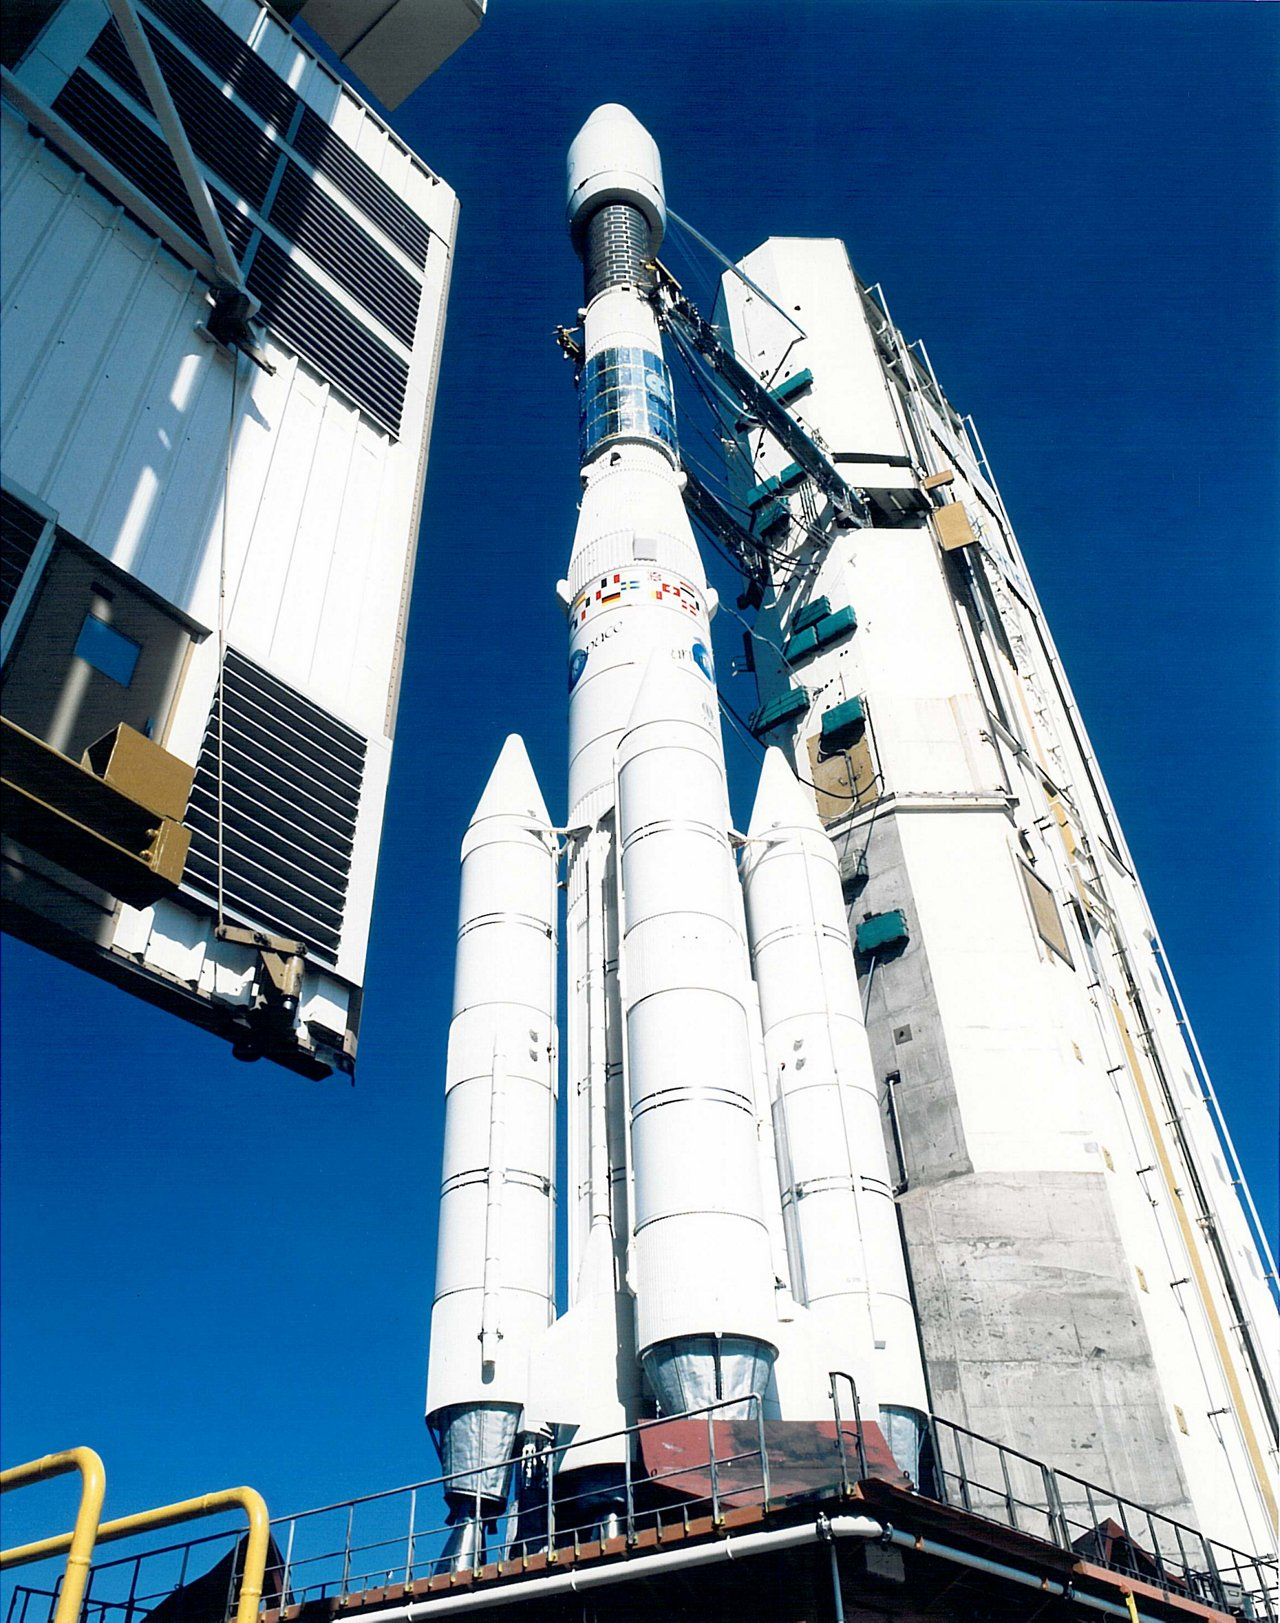 An Ariane 4 44L On The Launchpad 1989